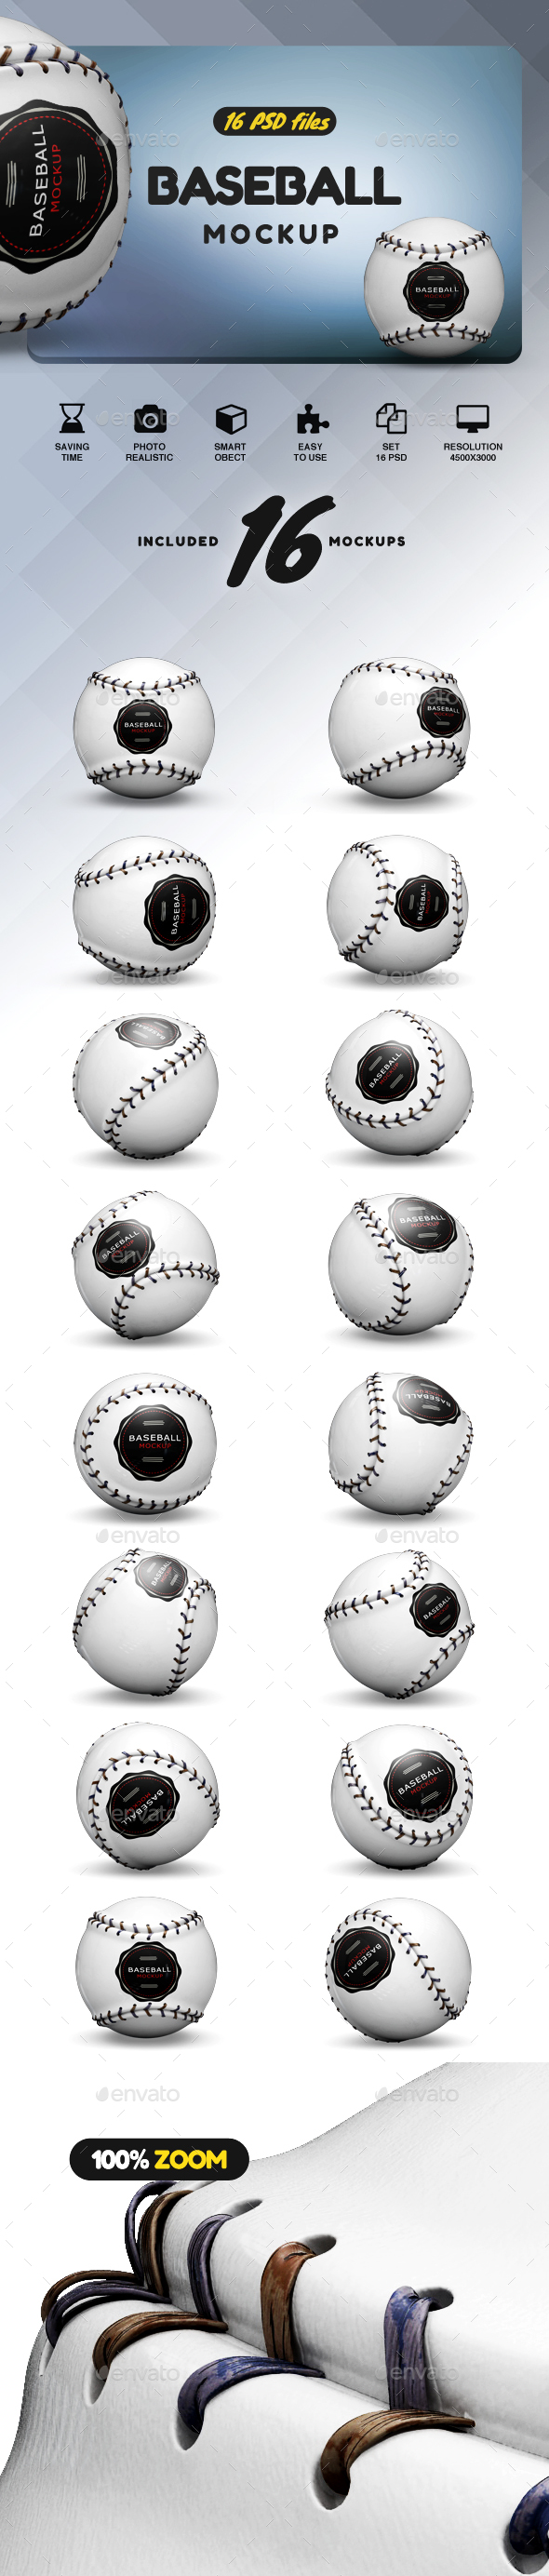 GraphicRiver Baseball Mockup 21119858